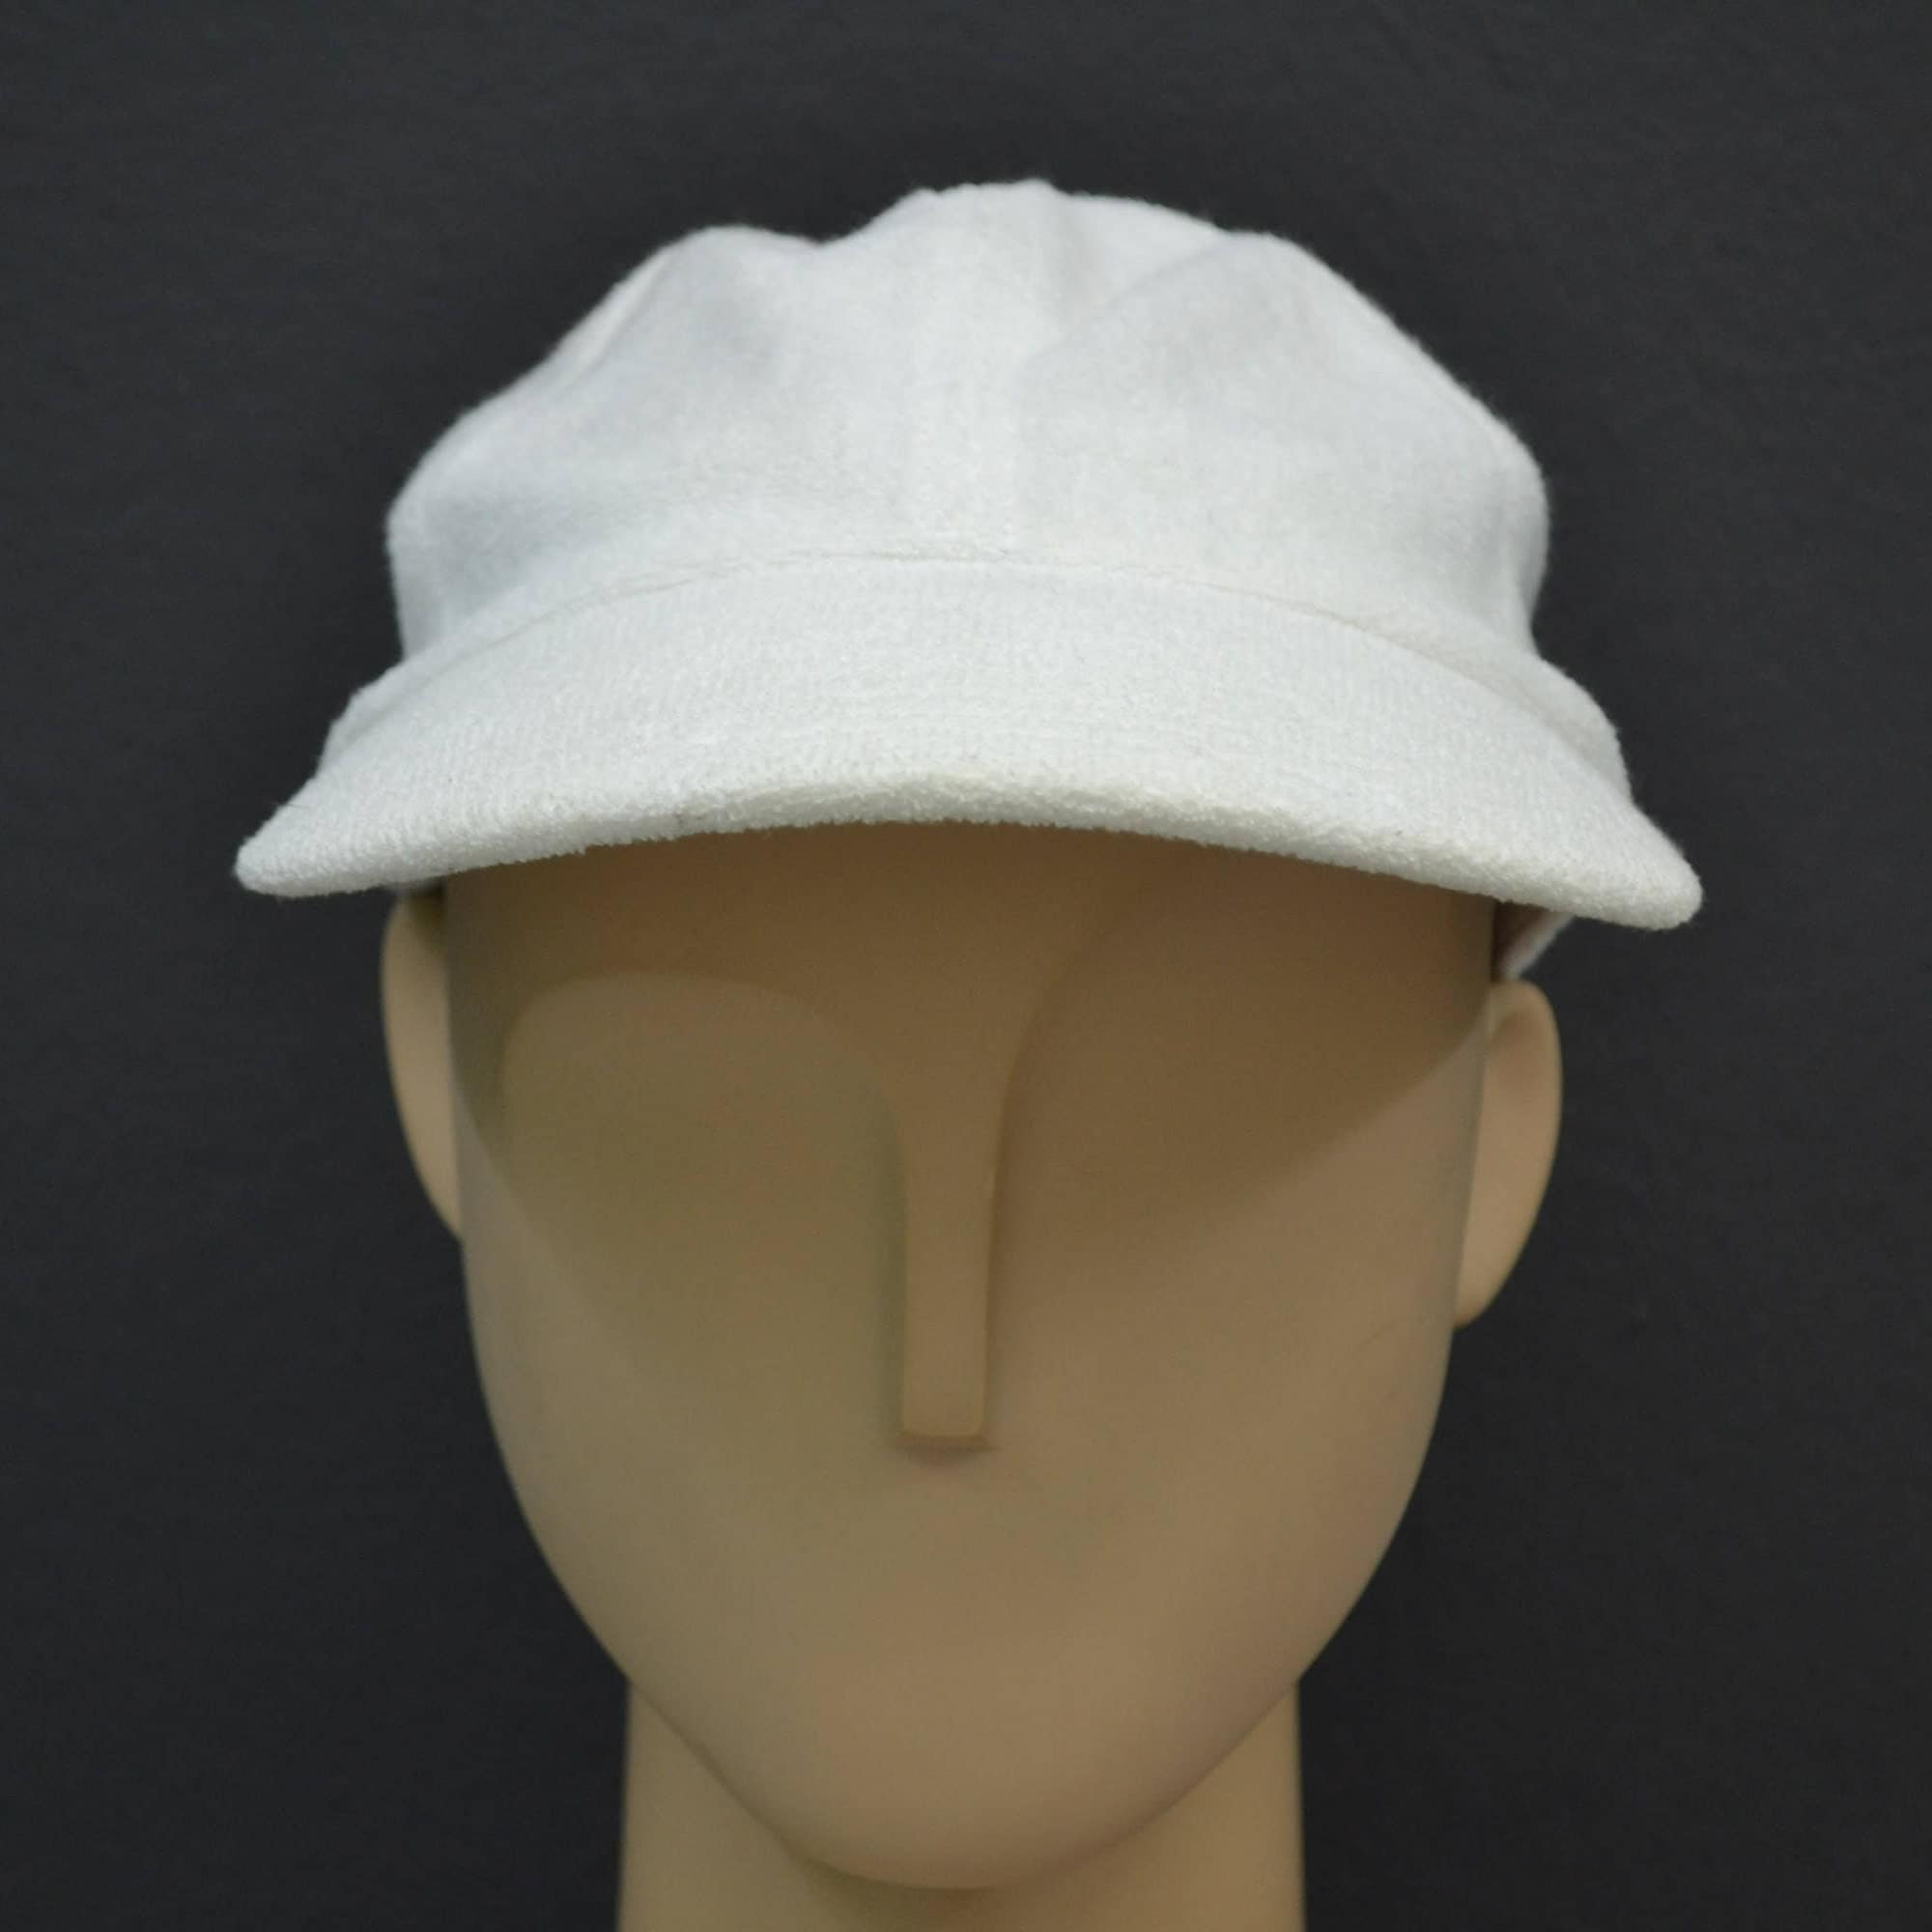 8afa68d23ca ... france adidas hat vintage adidas full cap adidas vintage hat made in  japan 57cm size m ...